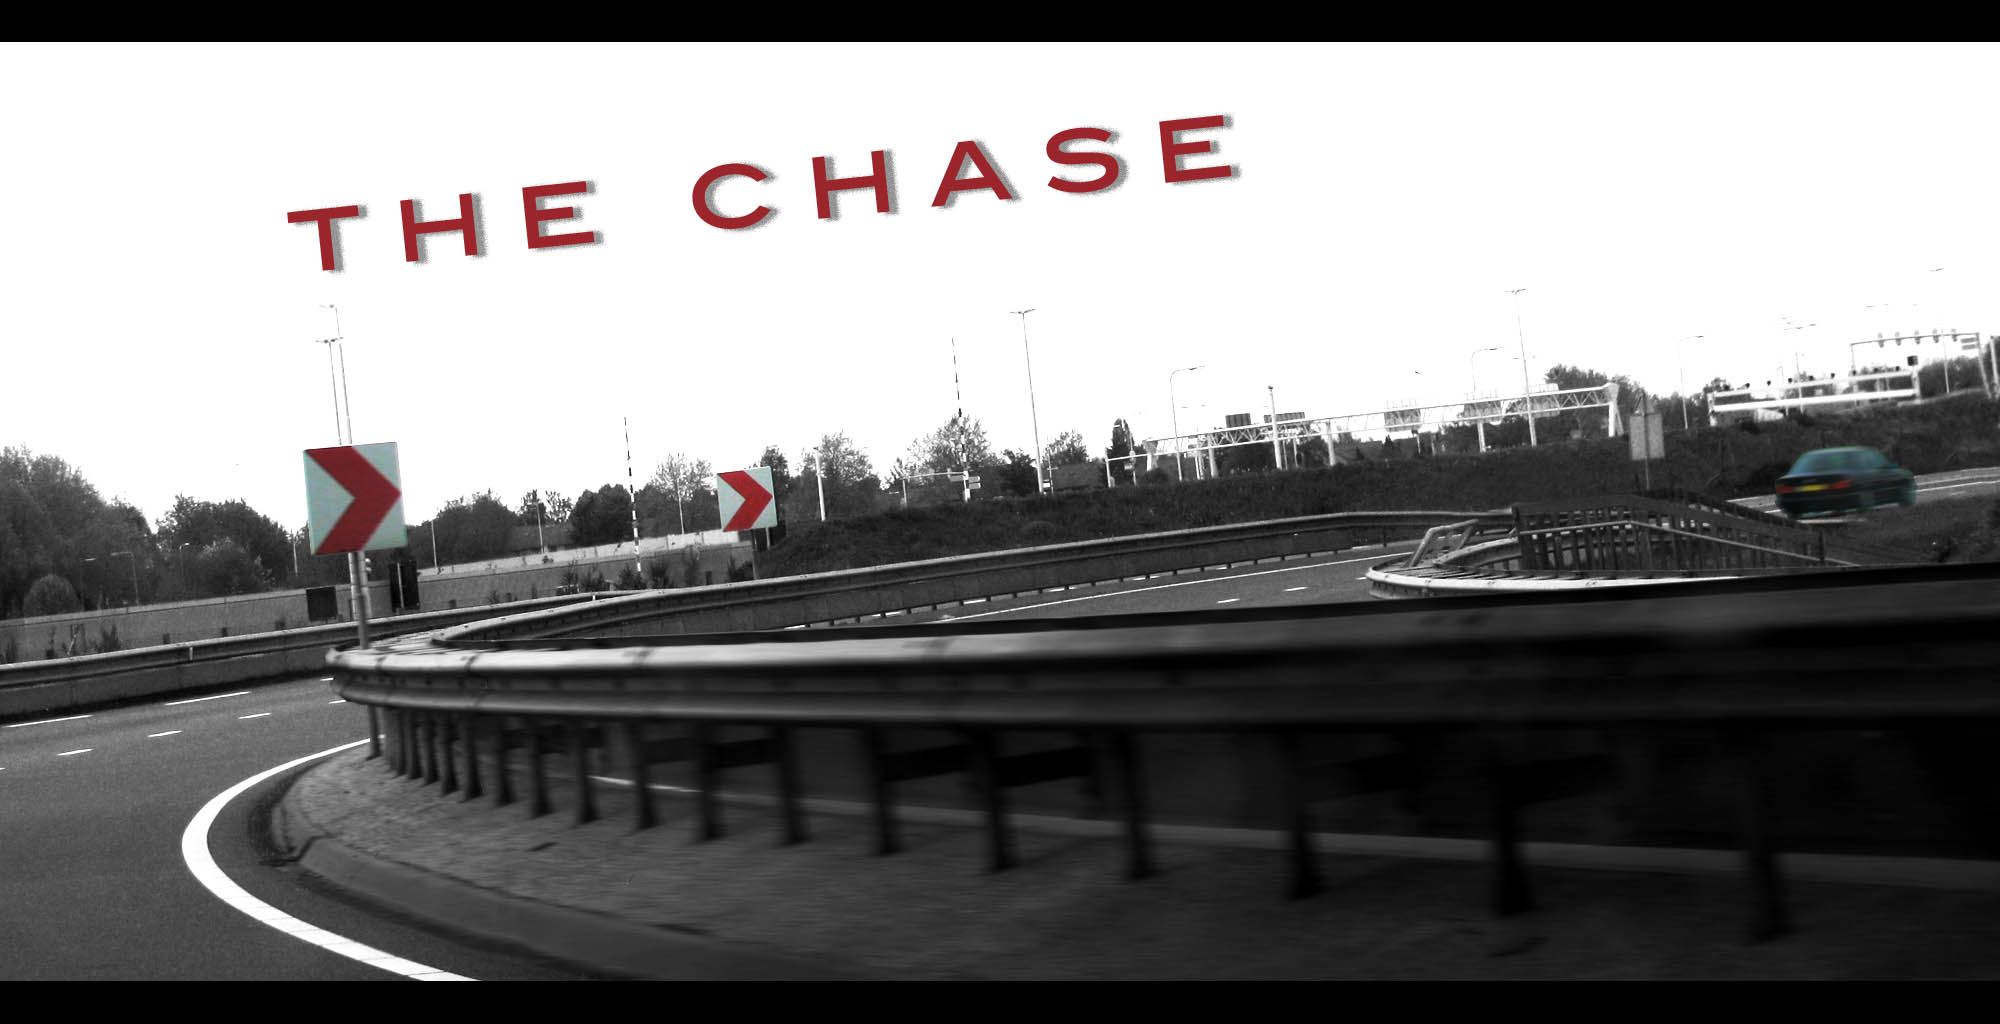 The car chase